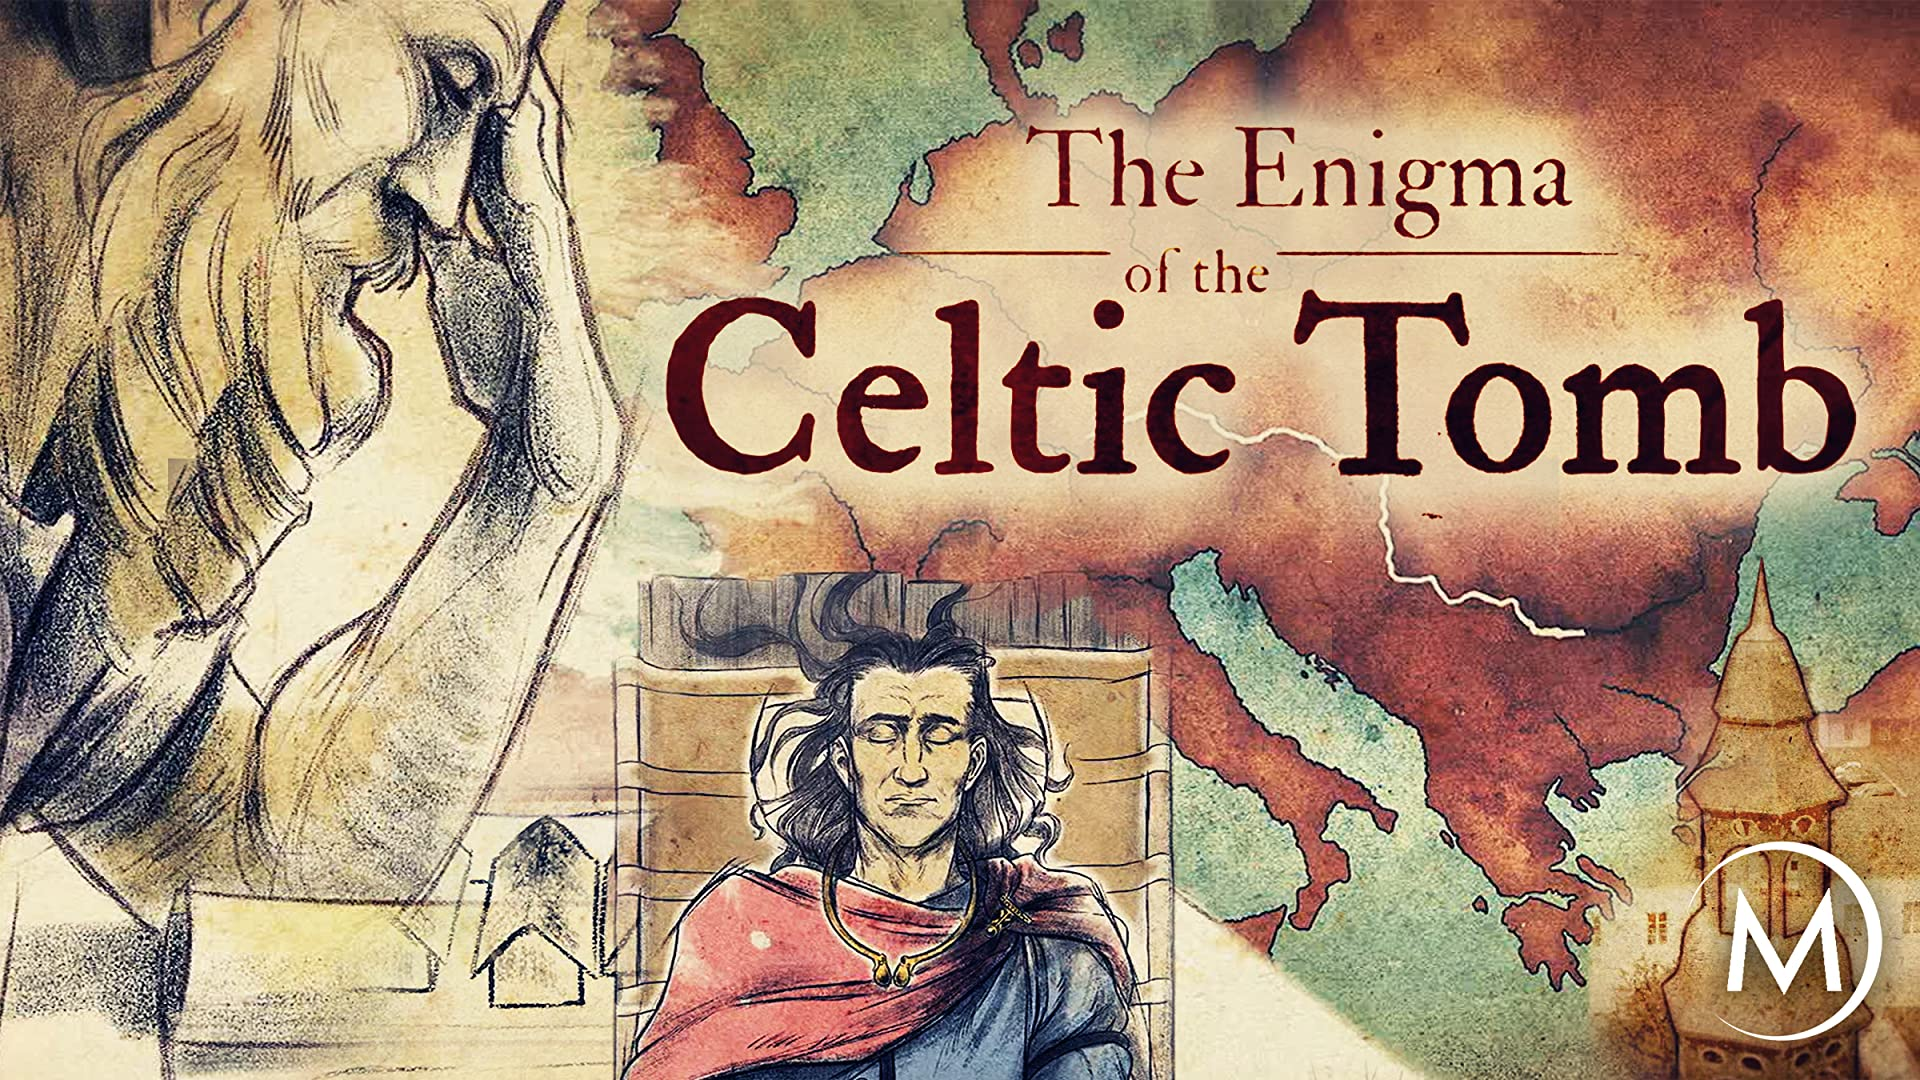 Enigma of the Celtic Tomb